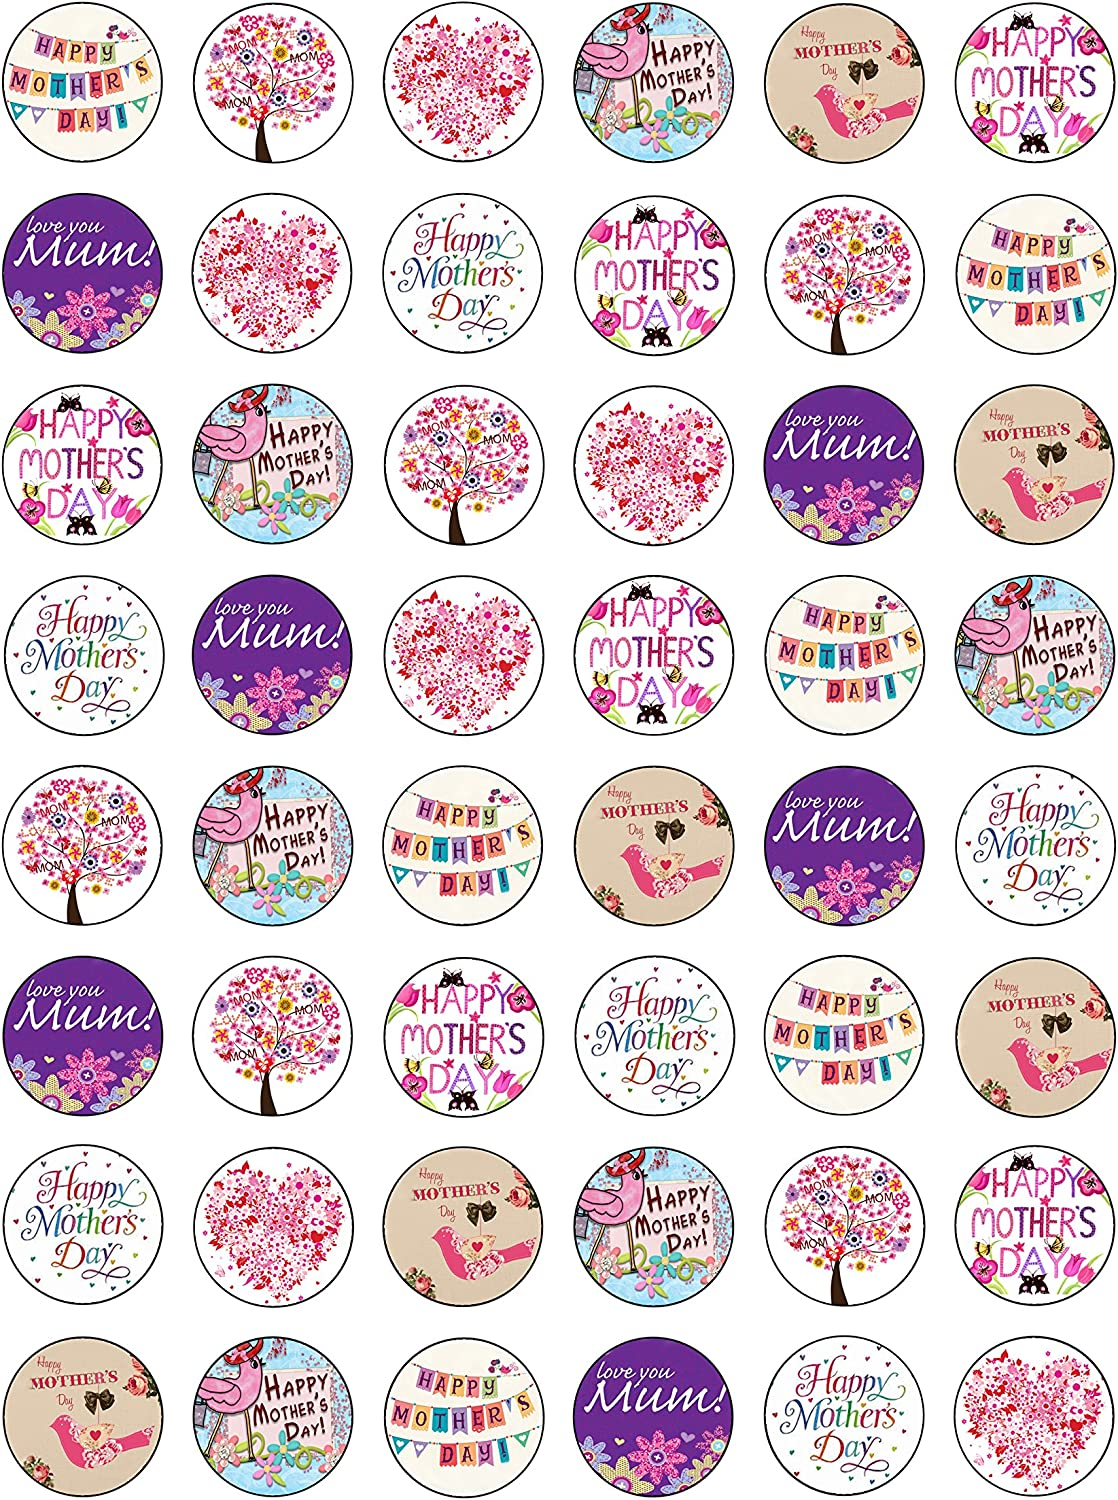 48 Edible Wafer Paper Gorgeous Happy Mothers Day Cake Toppers Decorations